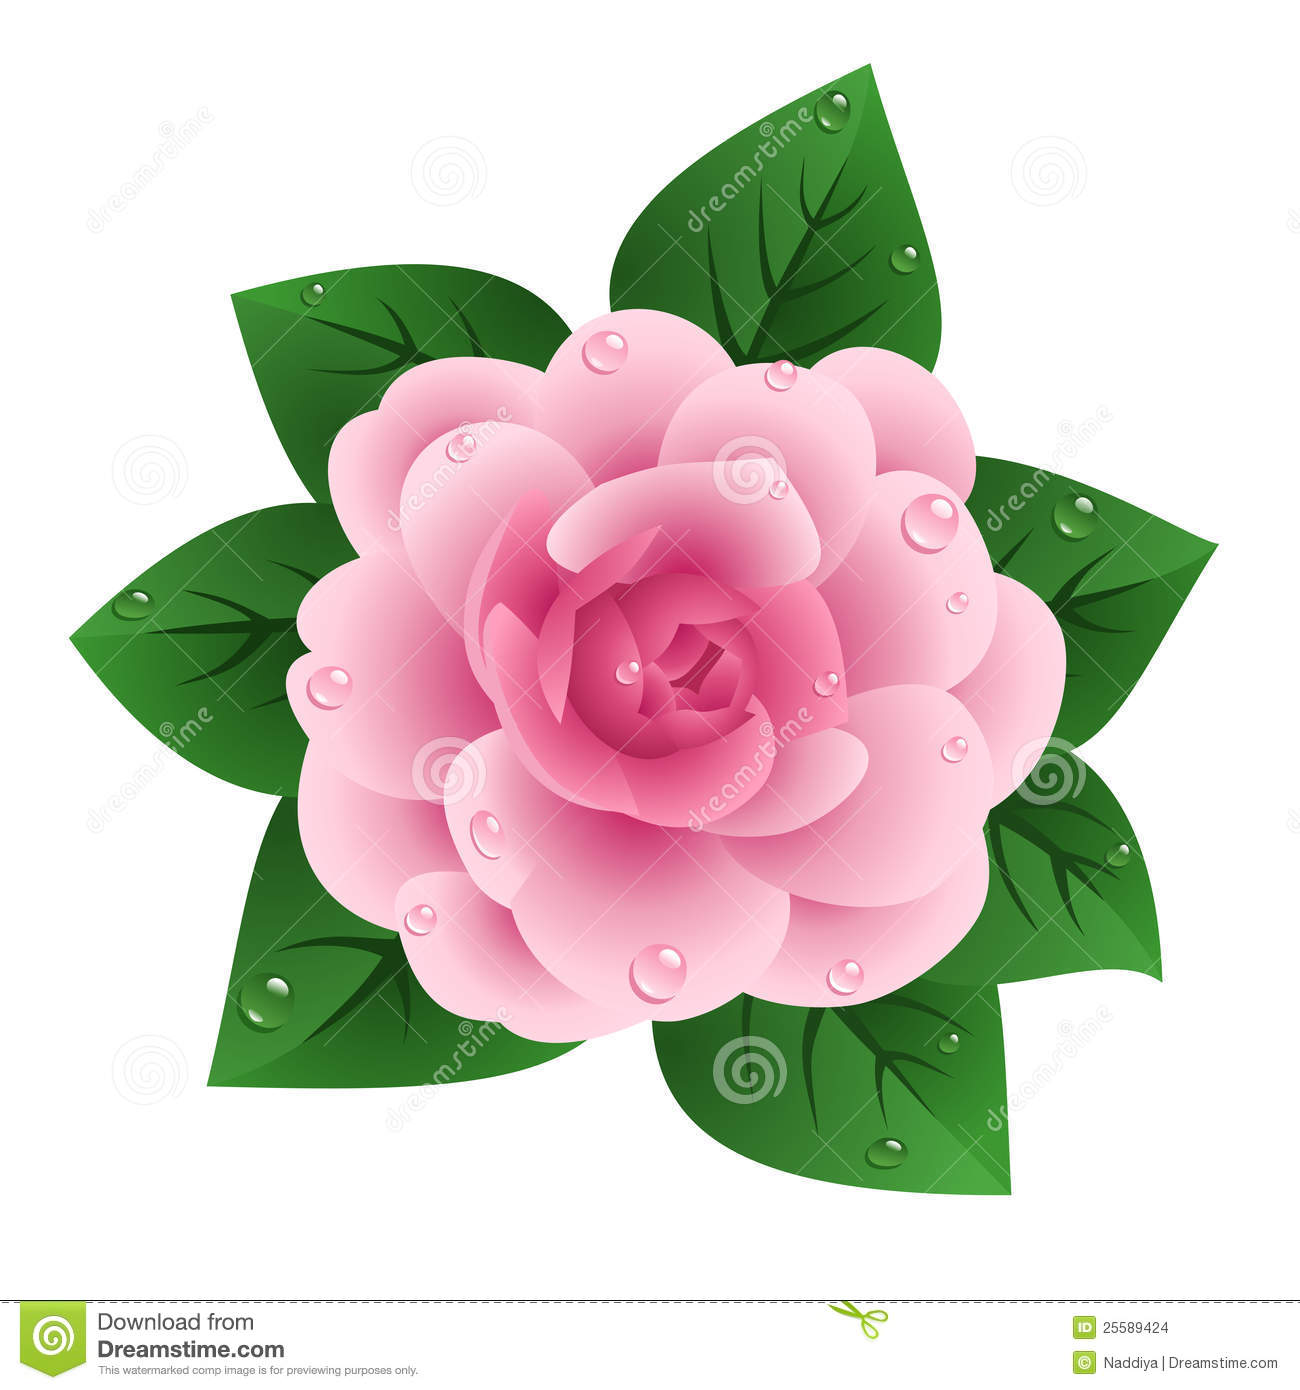 Camellia Stock Illustrations.